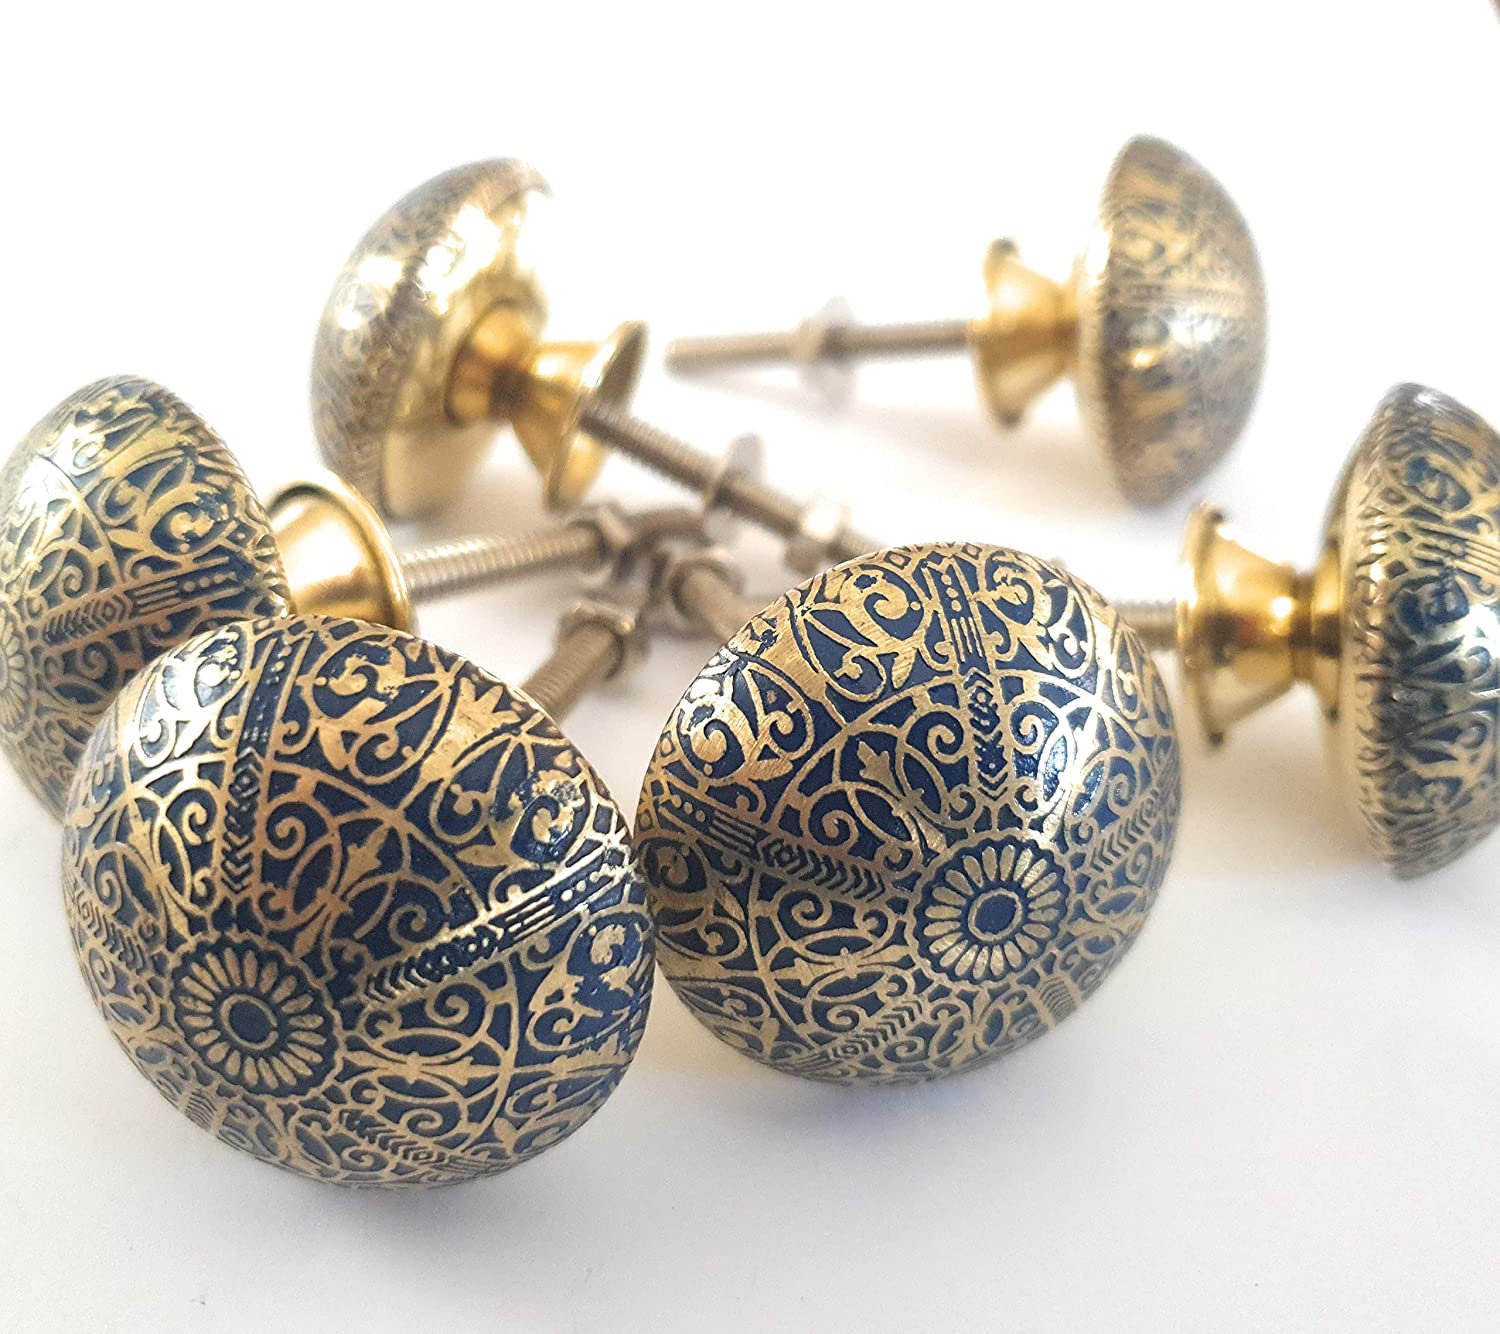 Vintage Shabby Chic 36 mm by FFF Furniture Blue Brass Patterned KNOBS - Kitchen Cabinet Pull knobs FFF Drawer Handles Cupboard Chest Set of 6 Brass Knobs by French Furniture Fittings